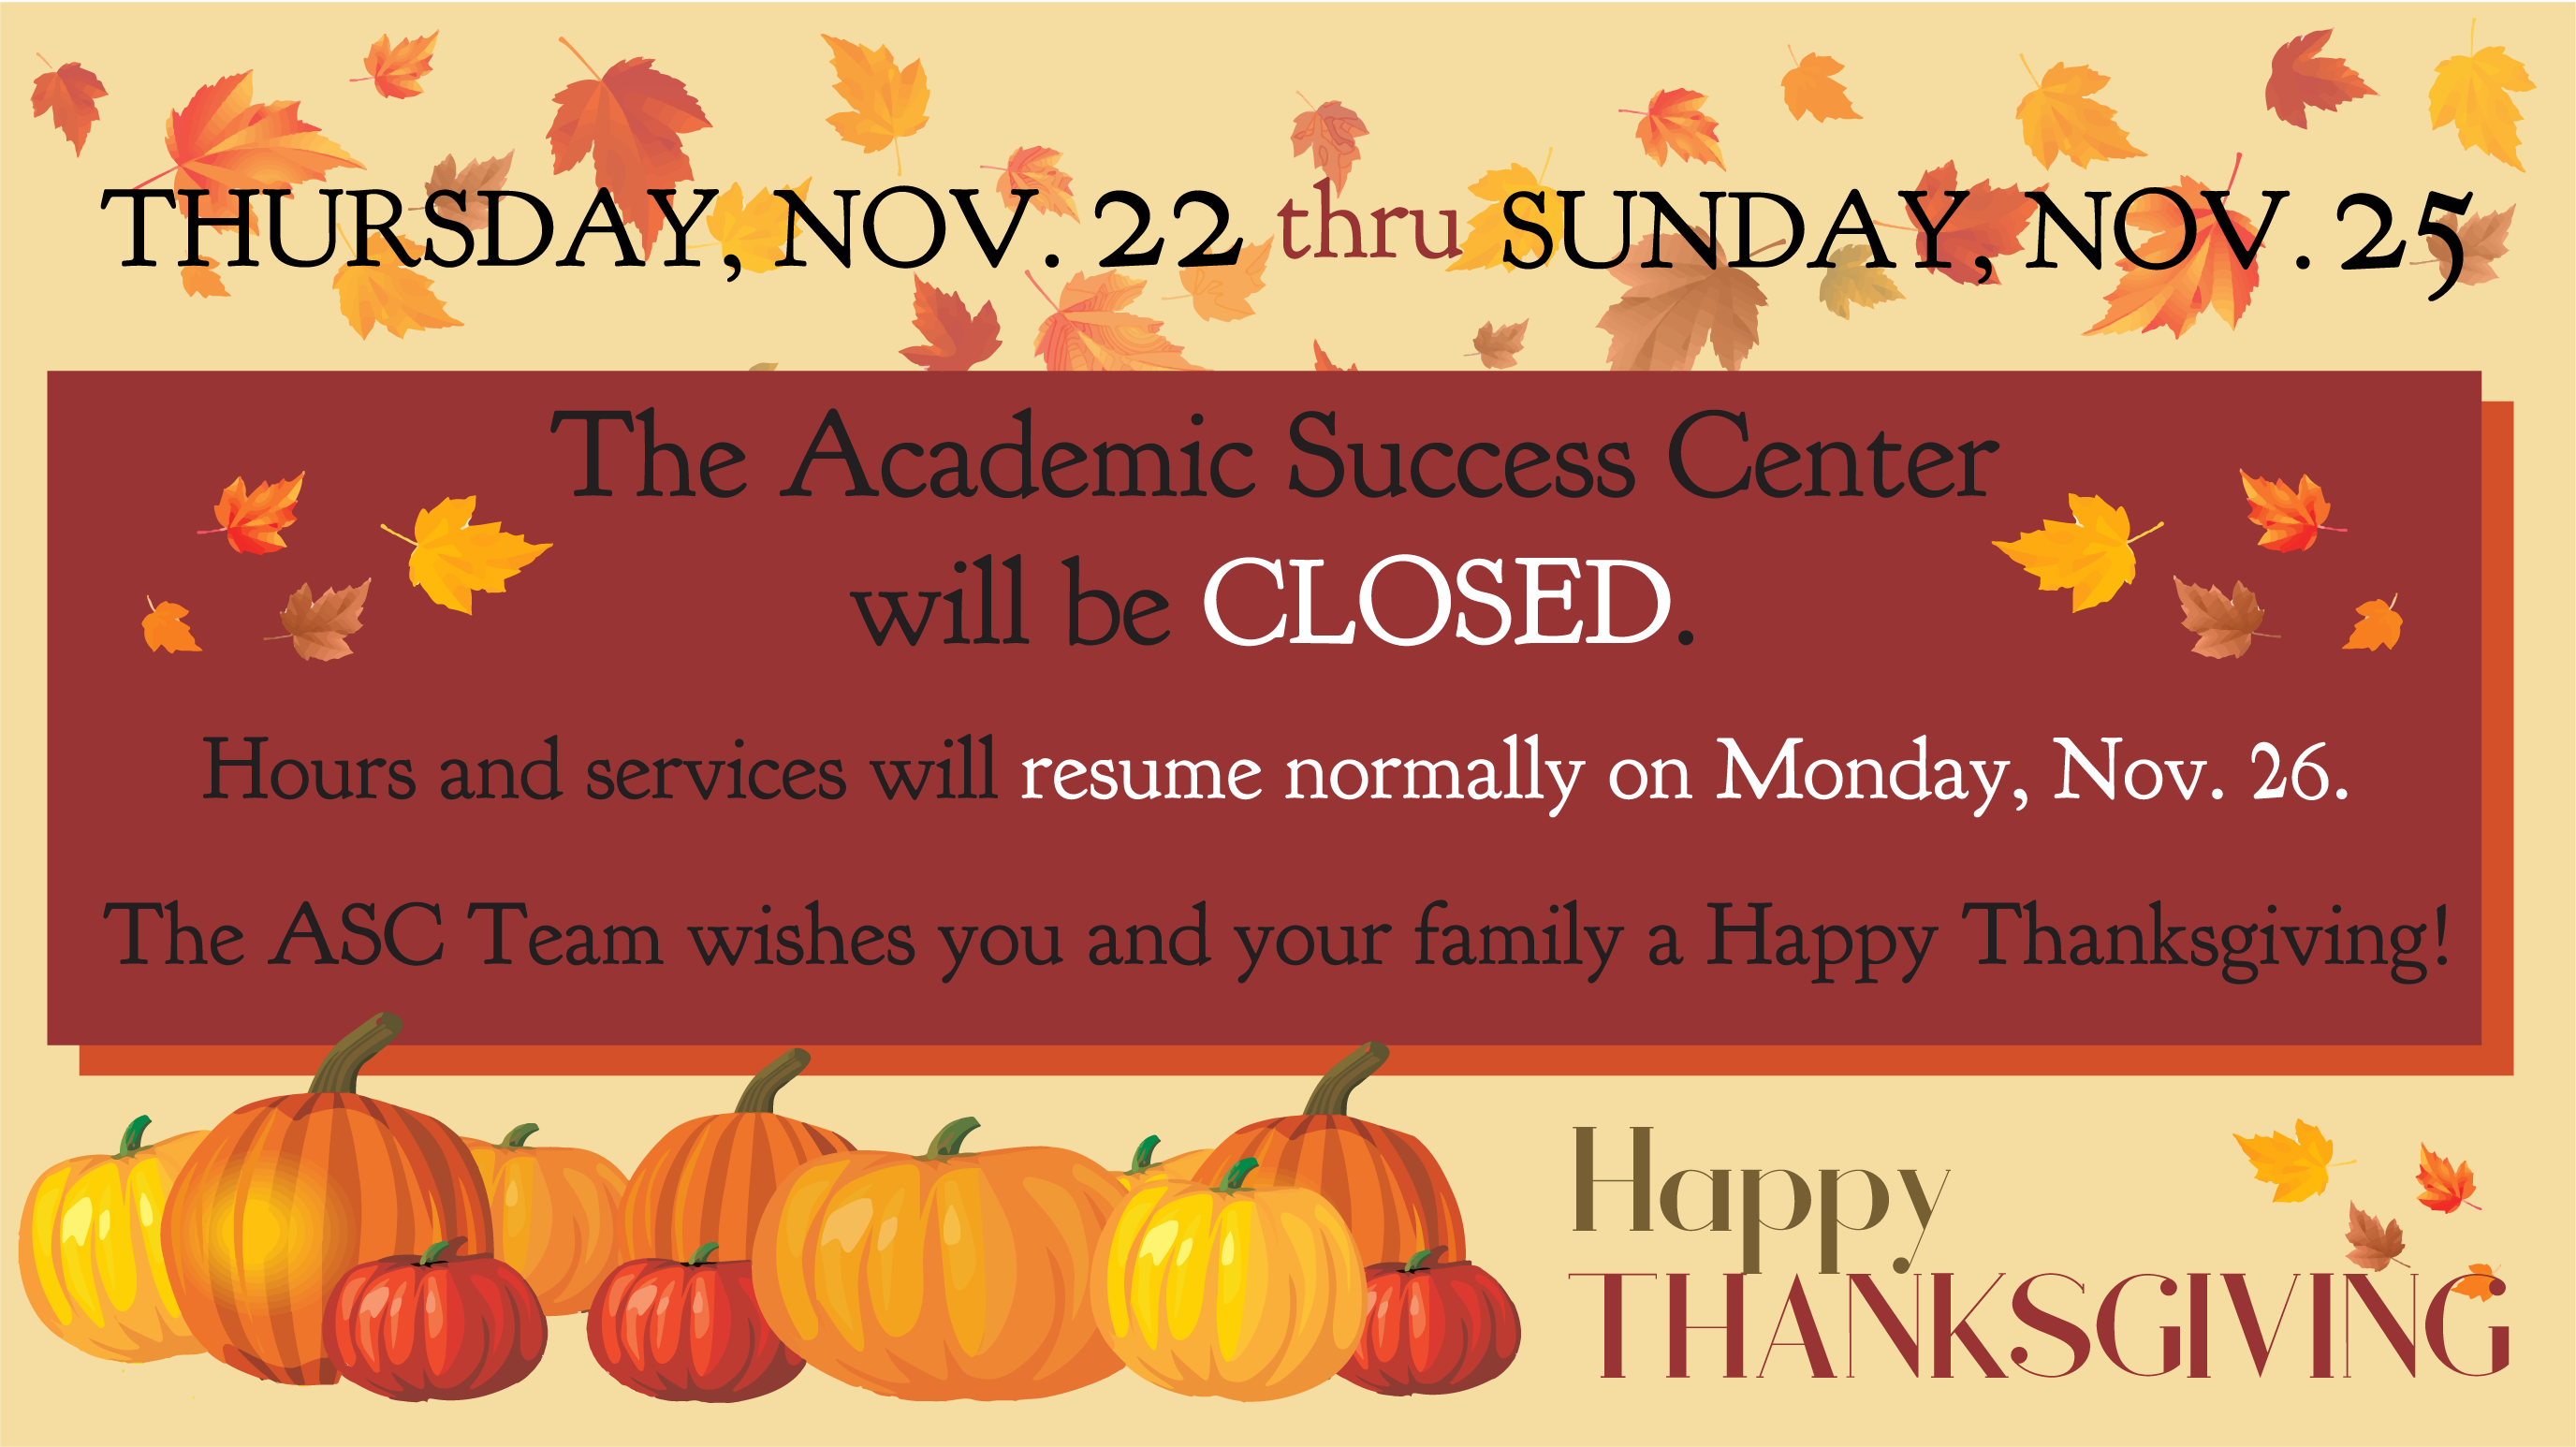 Happy Thanksgiving from the ASC!